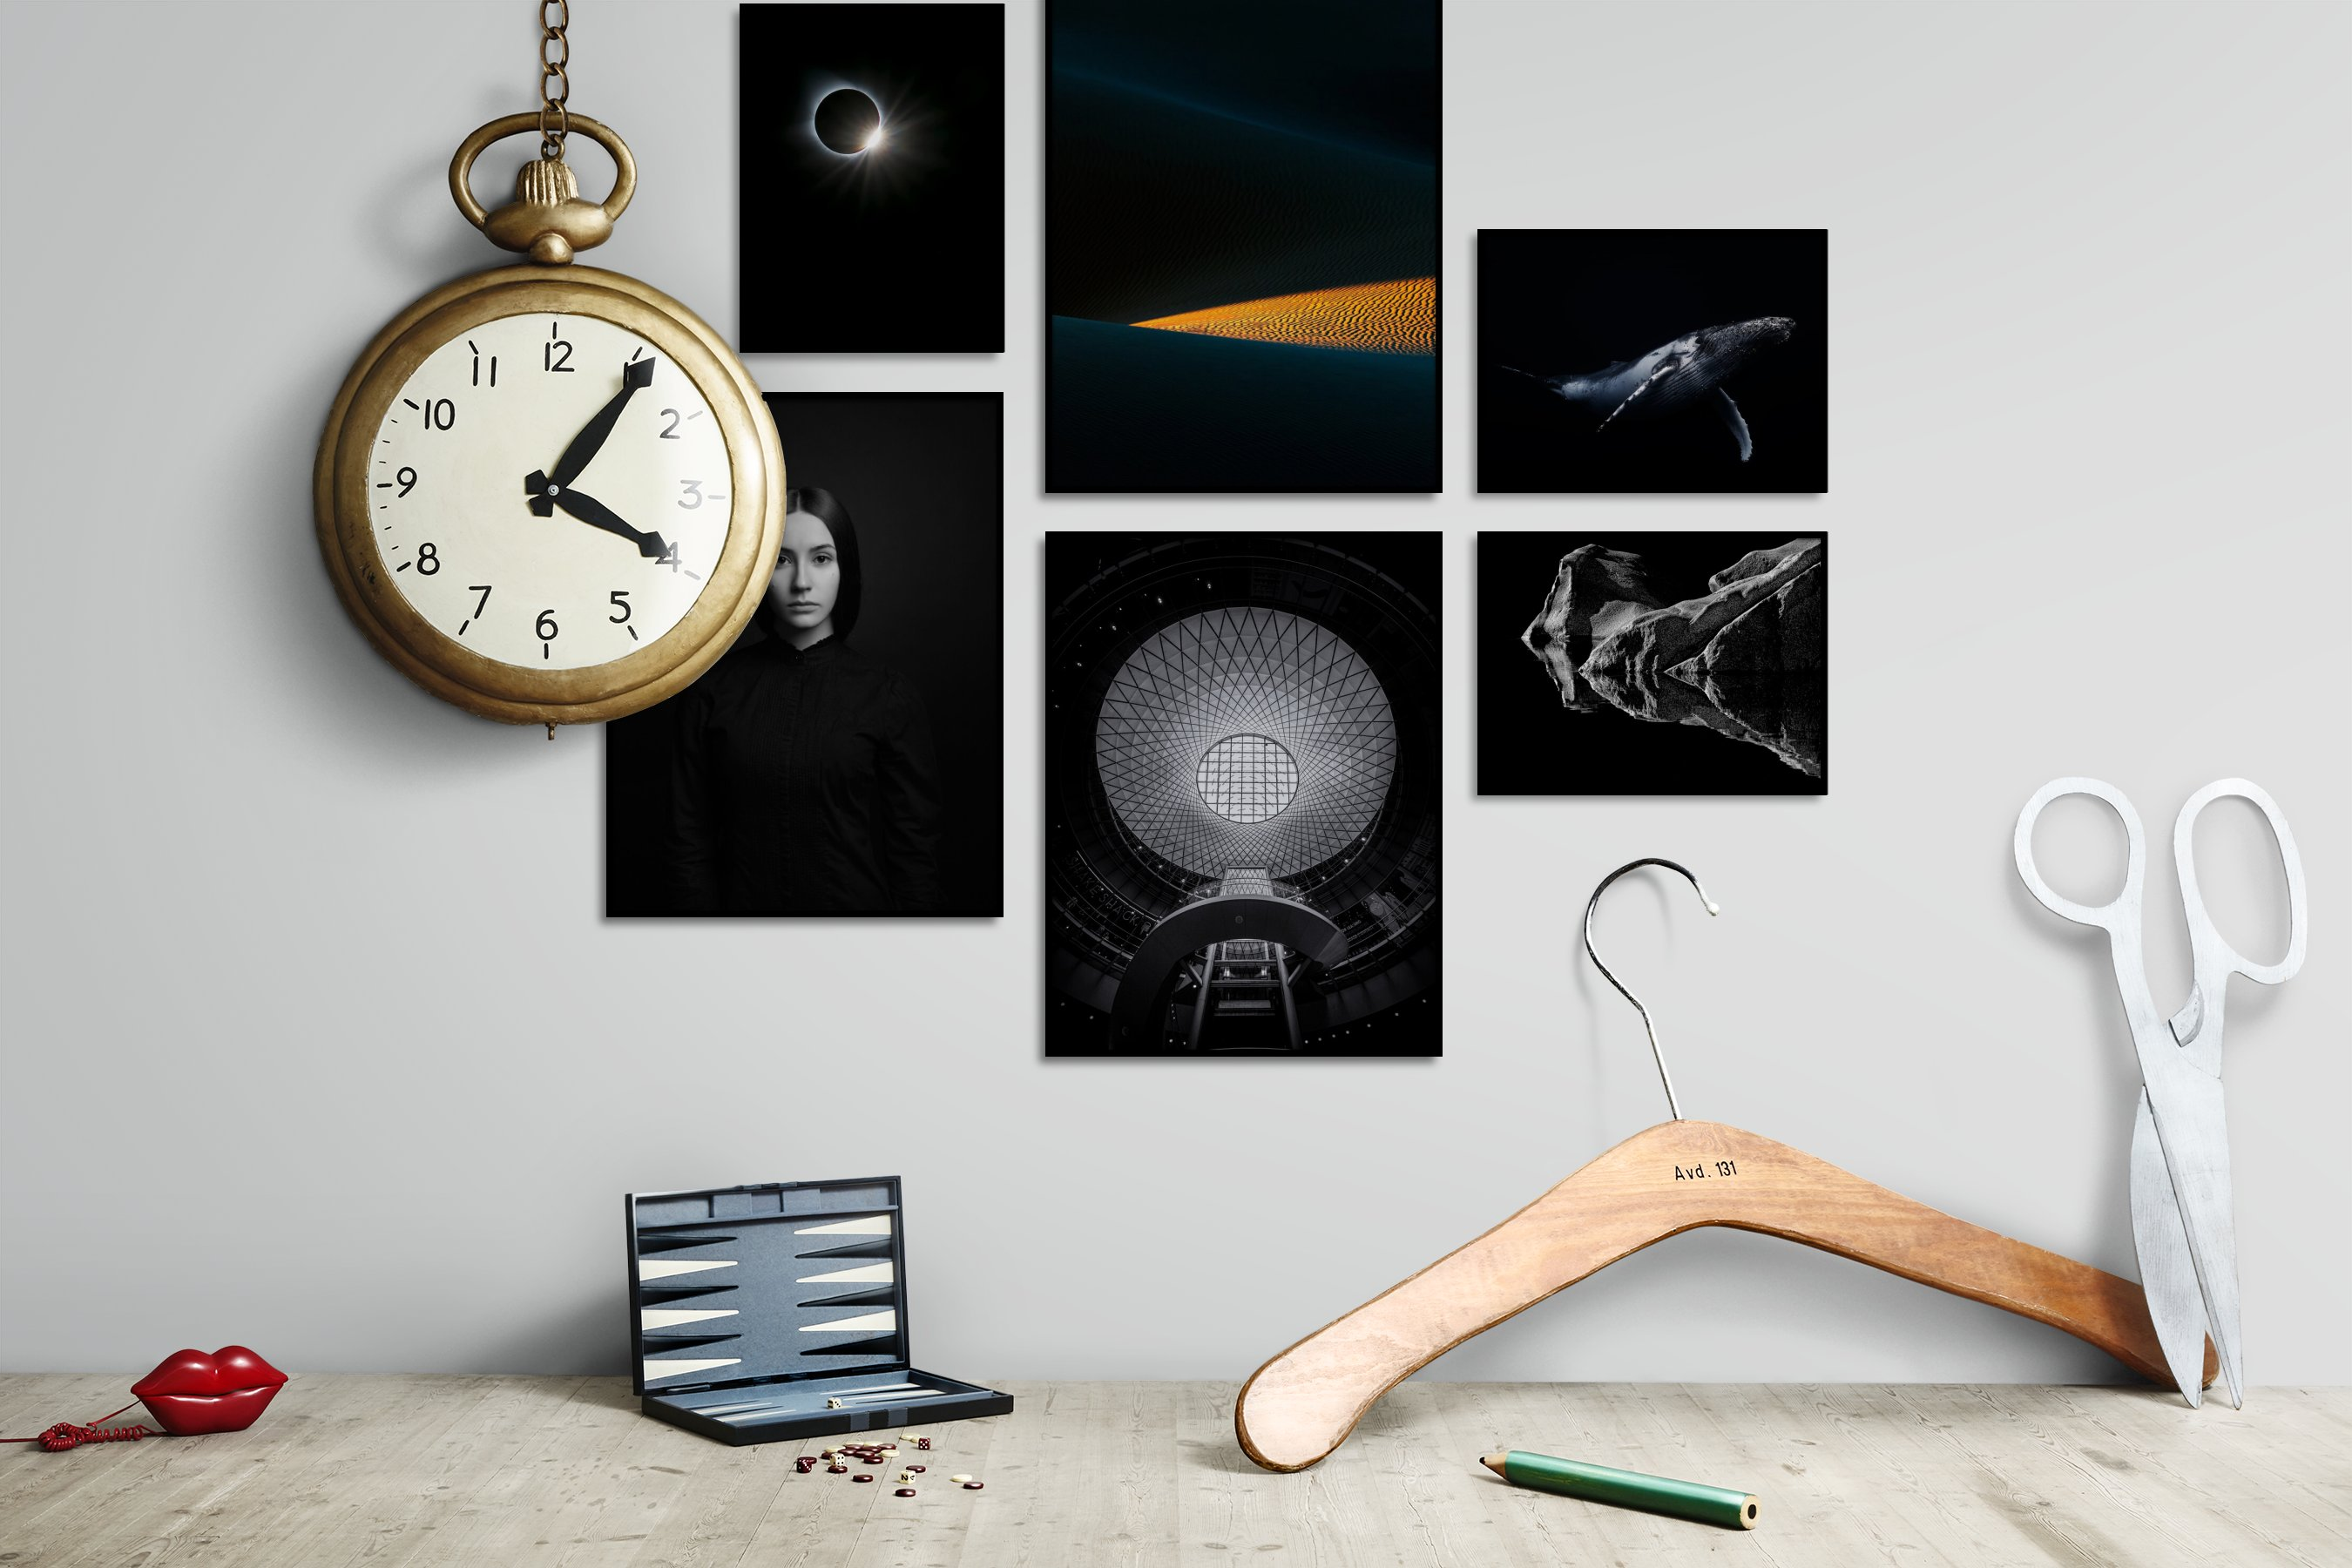 Gallery wall idea with six framed pictures arranged on a wall depicting Dark Tones, For the Minimalist, Nature, Fashion & Beauty, Black & White, Animals, and Mindfulness